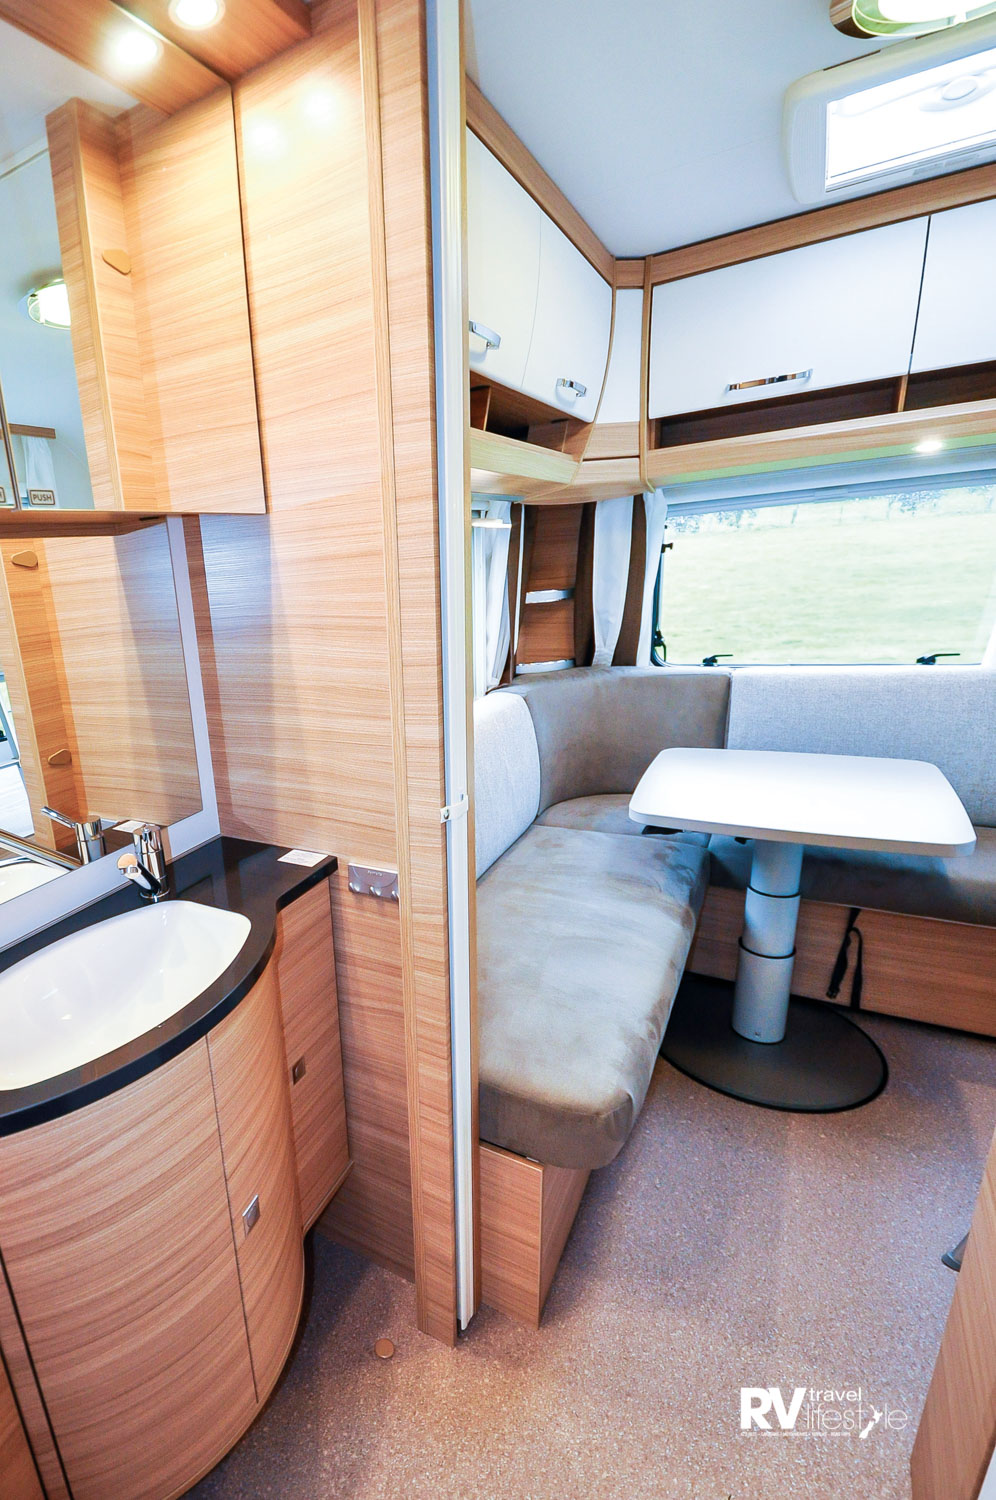 The bathroom door opens between the rear bunk-lounge area and main bed space